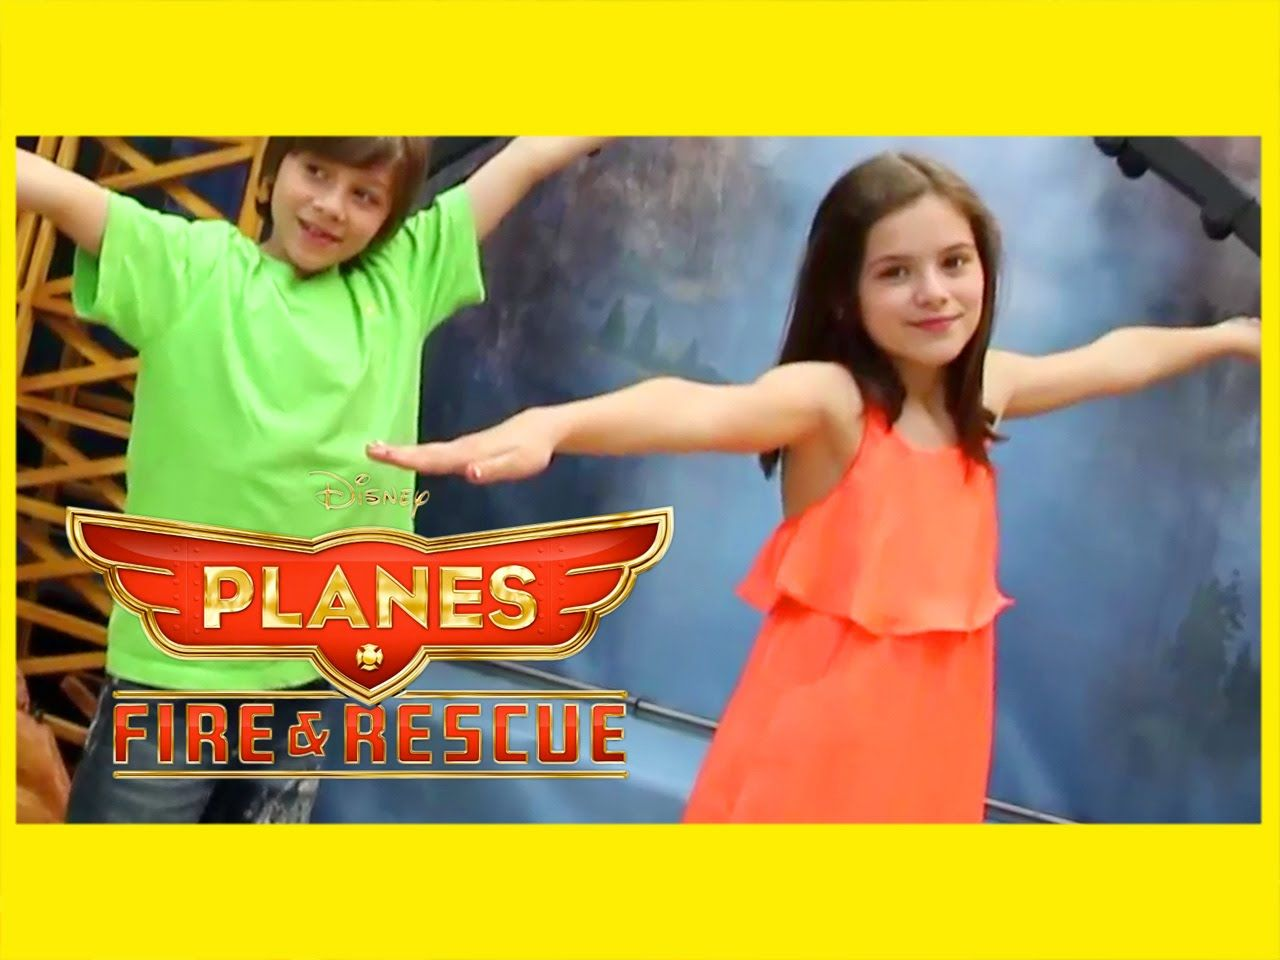 See what KittiesMama had to say after they saw Planes: Fire & Rescue ...